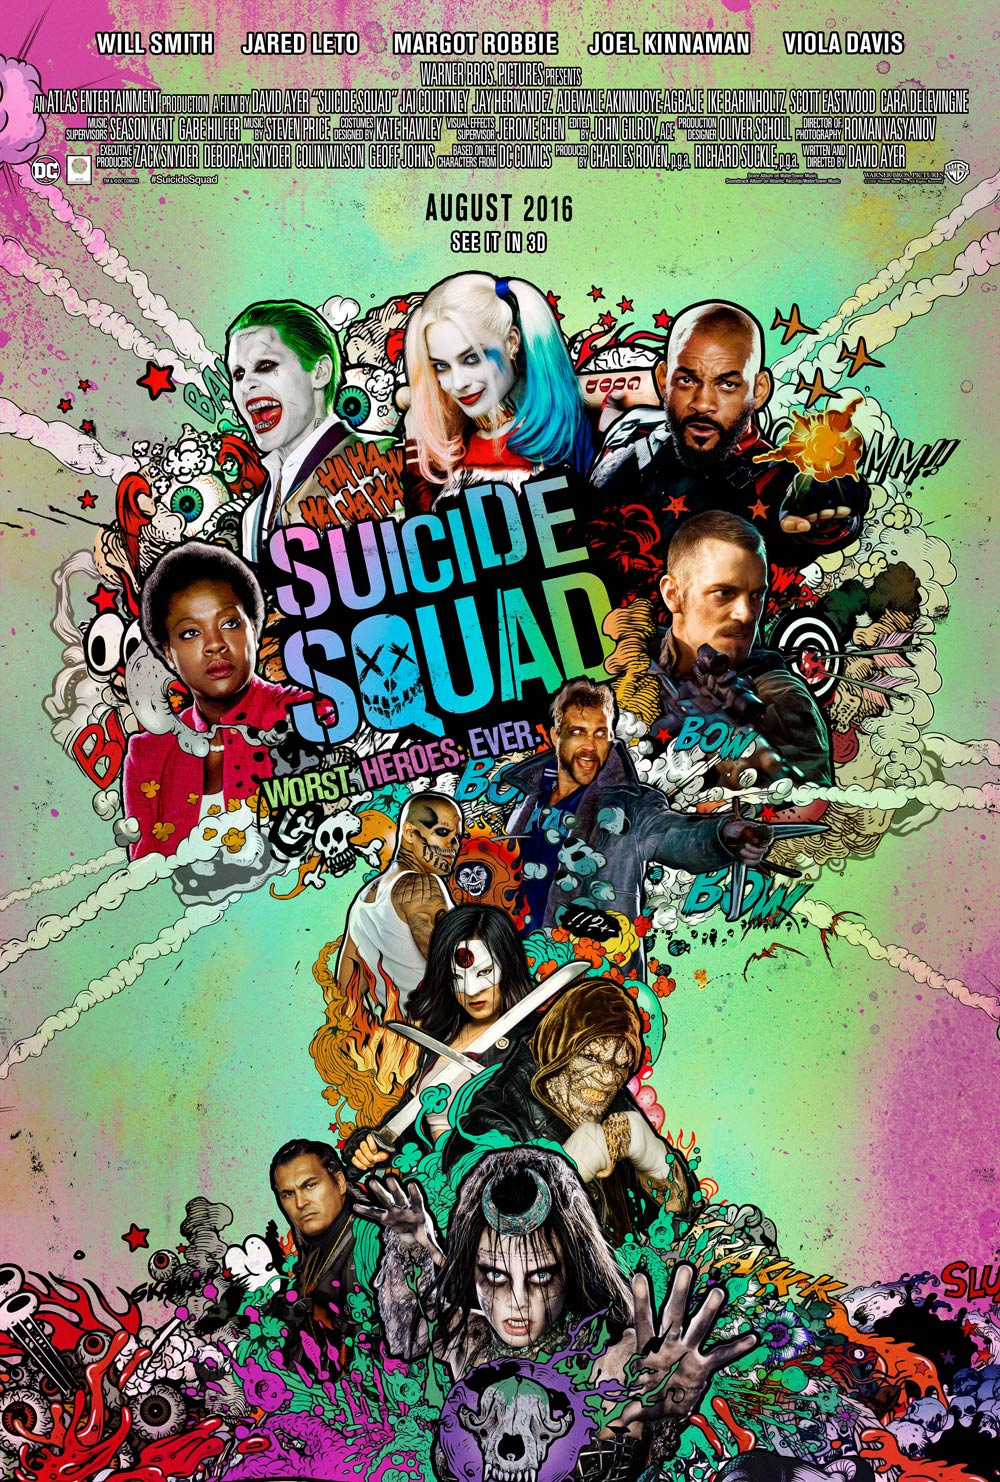 Main Artwork for Suicide Squad Revealed